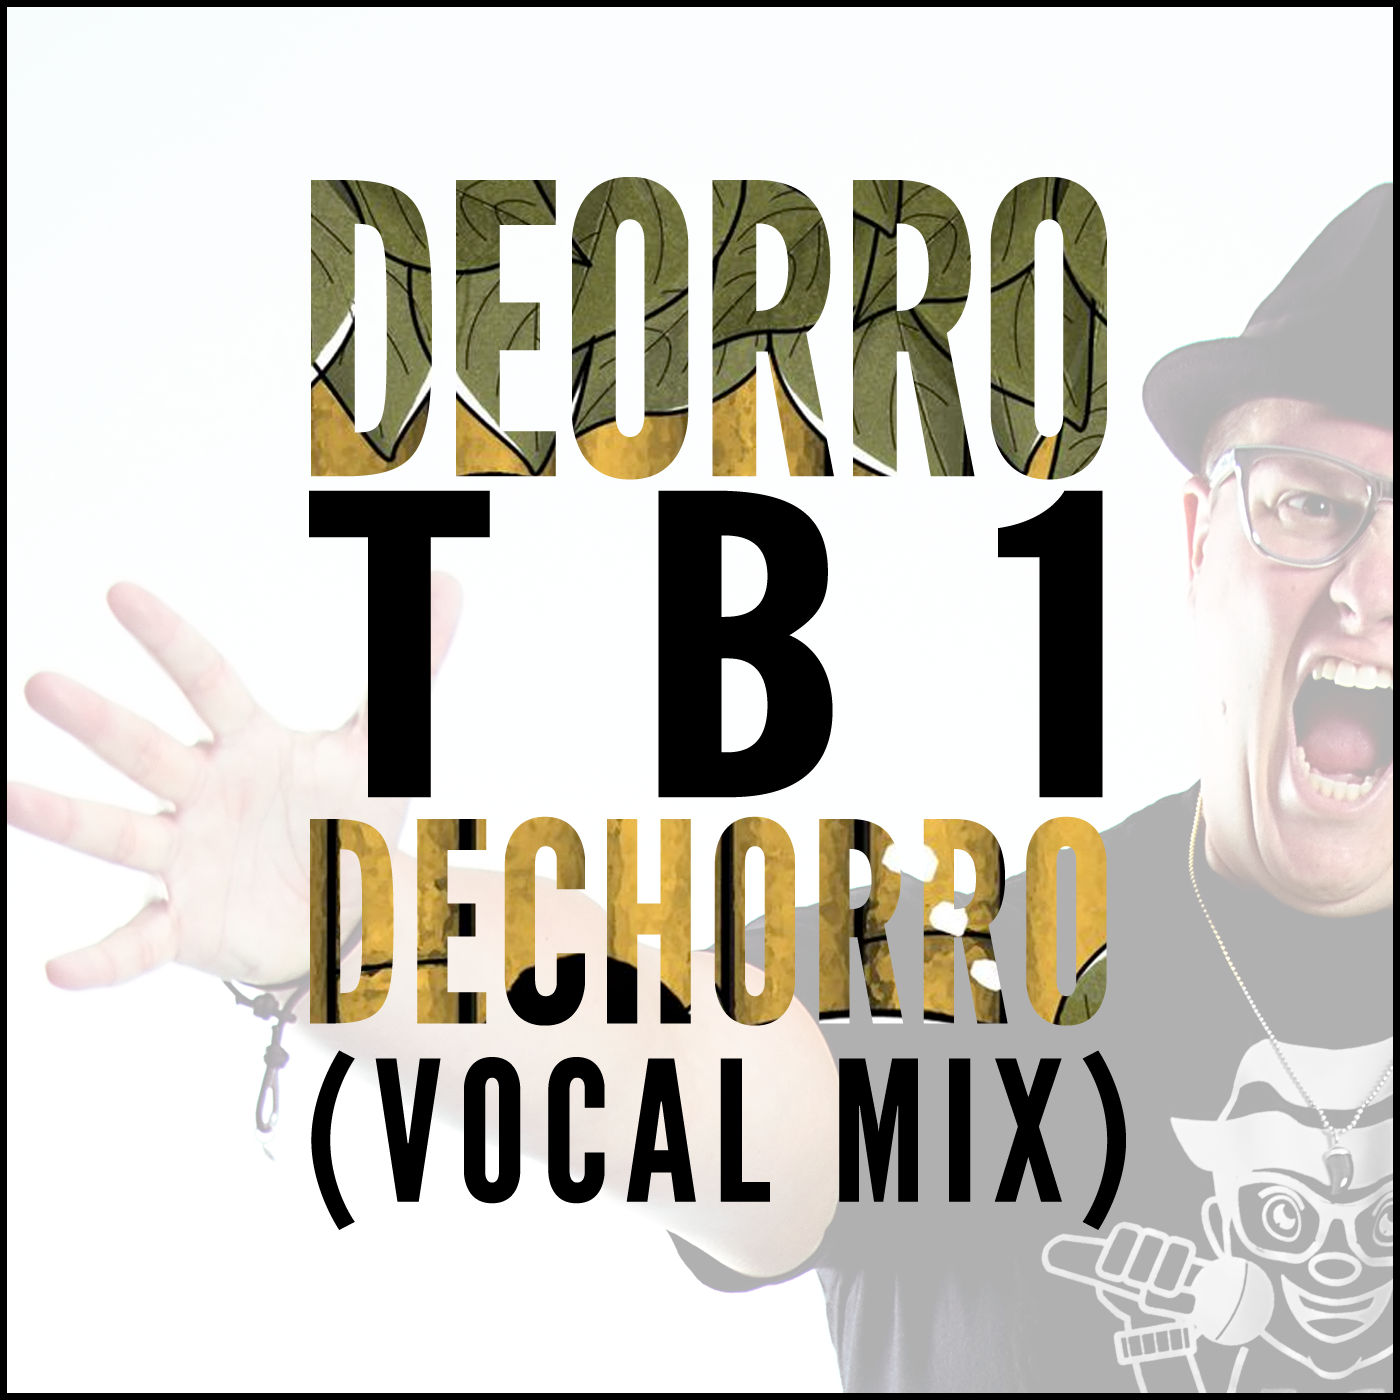 Deorro - Dechorro (TB1 Vocal Mix) Artwork